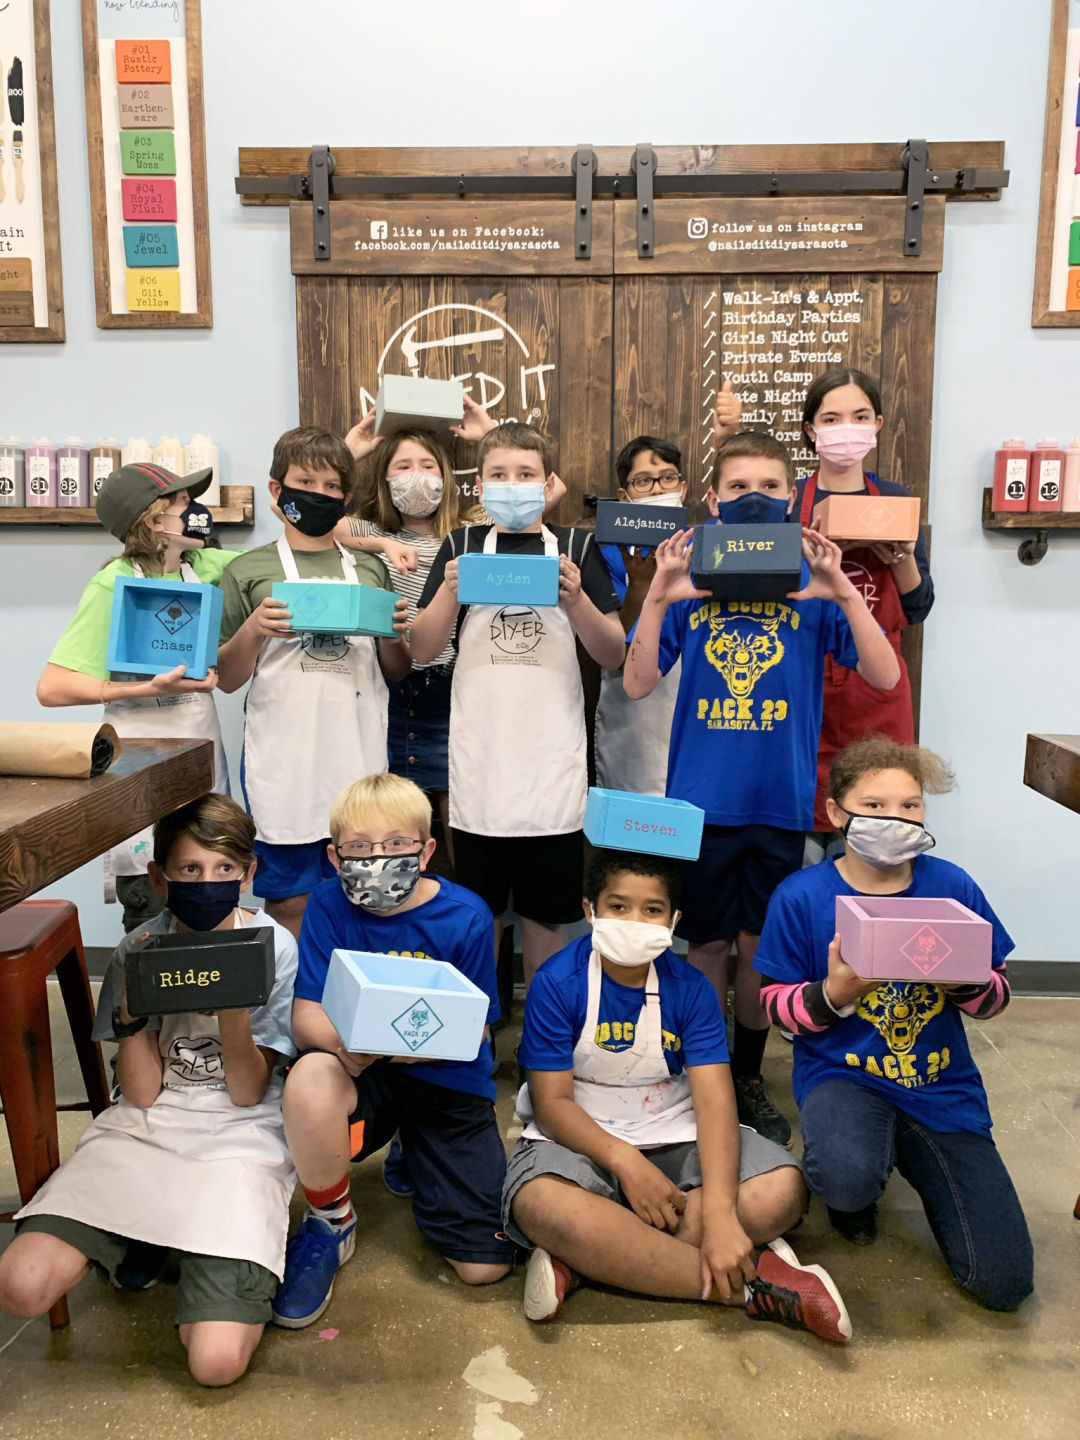 A group of kids at Nailed It DIY studio with their projects